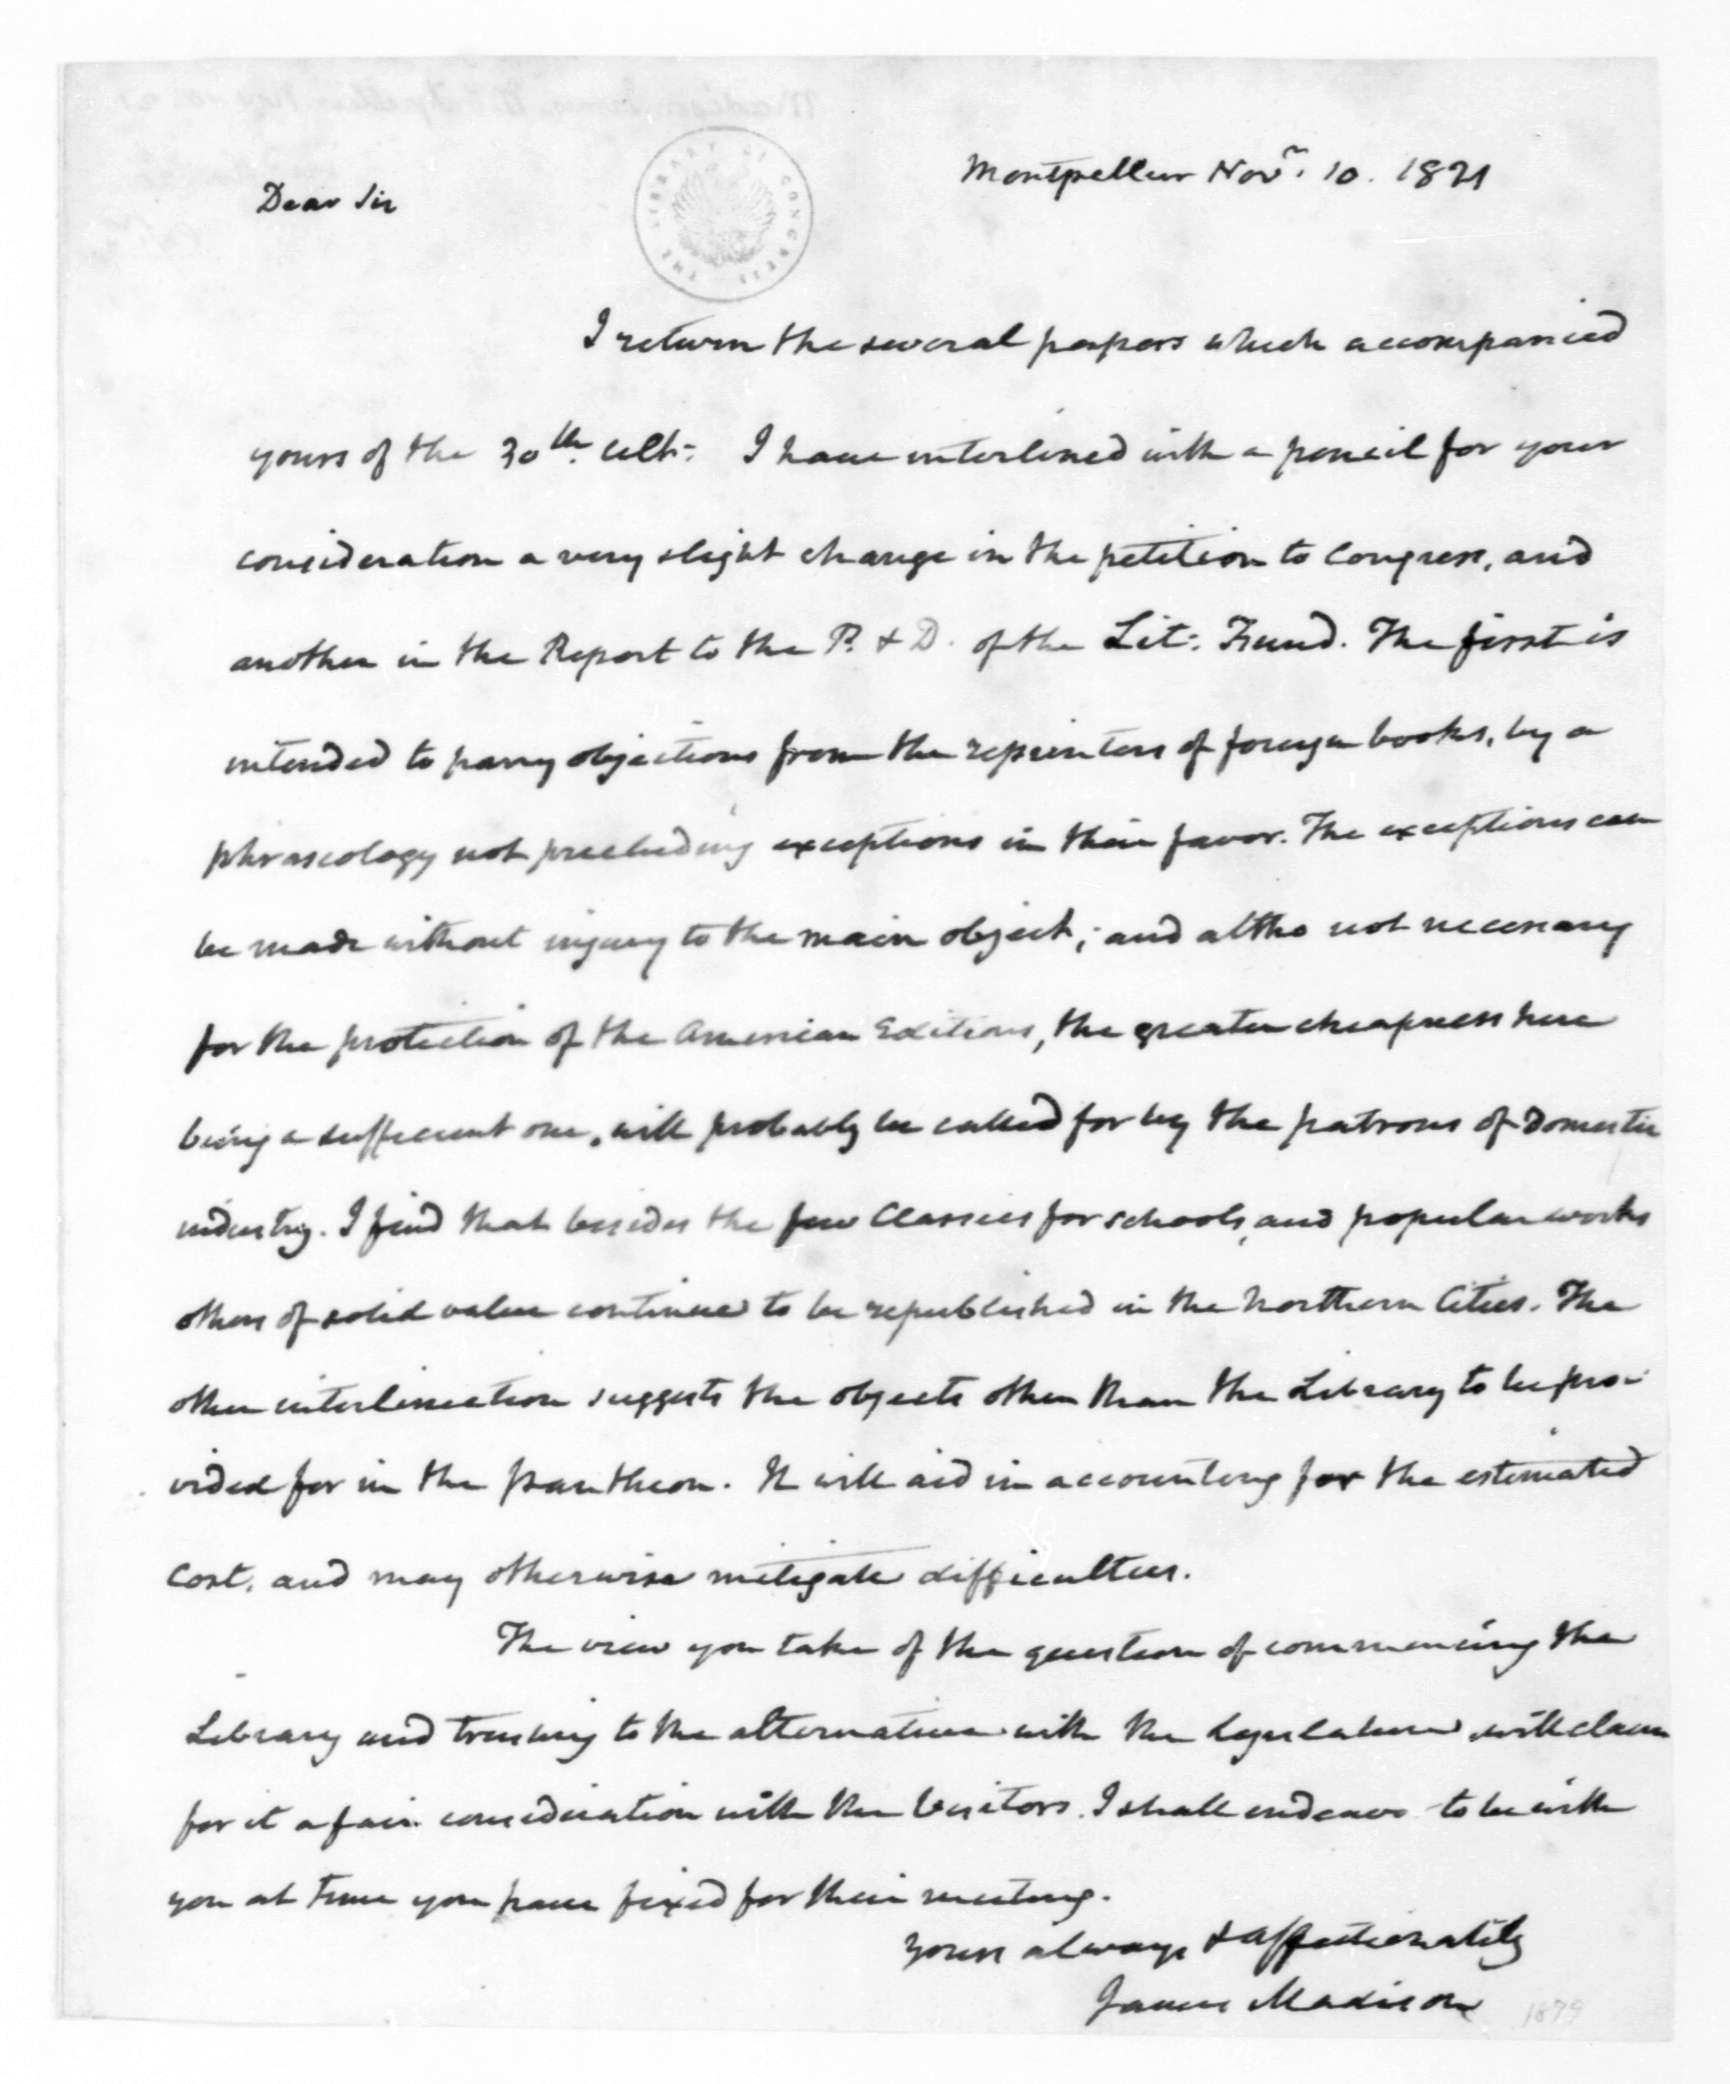 Thomas jefferson essay paper essay on social issues research paper